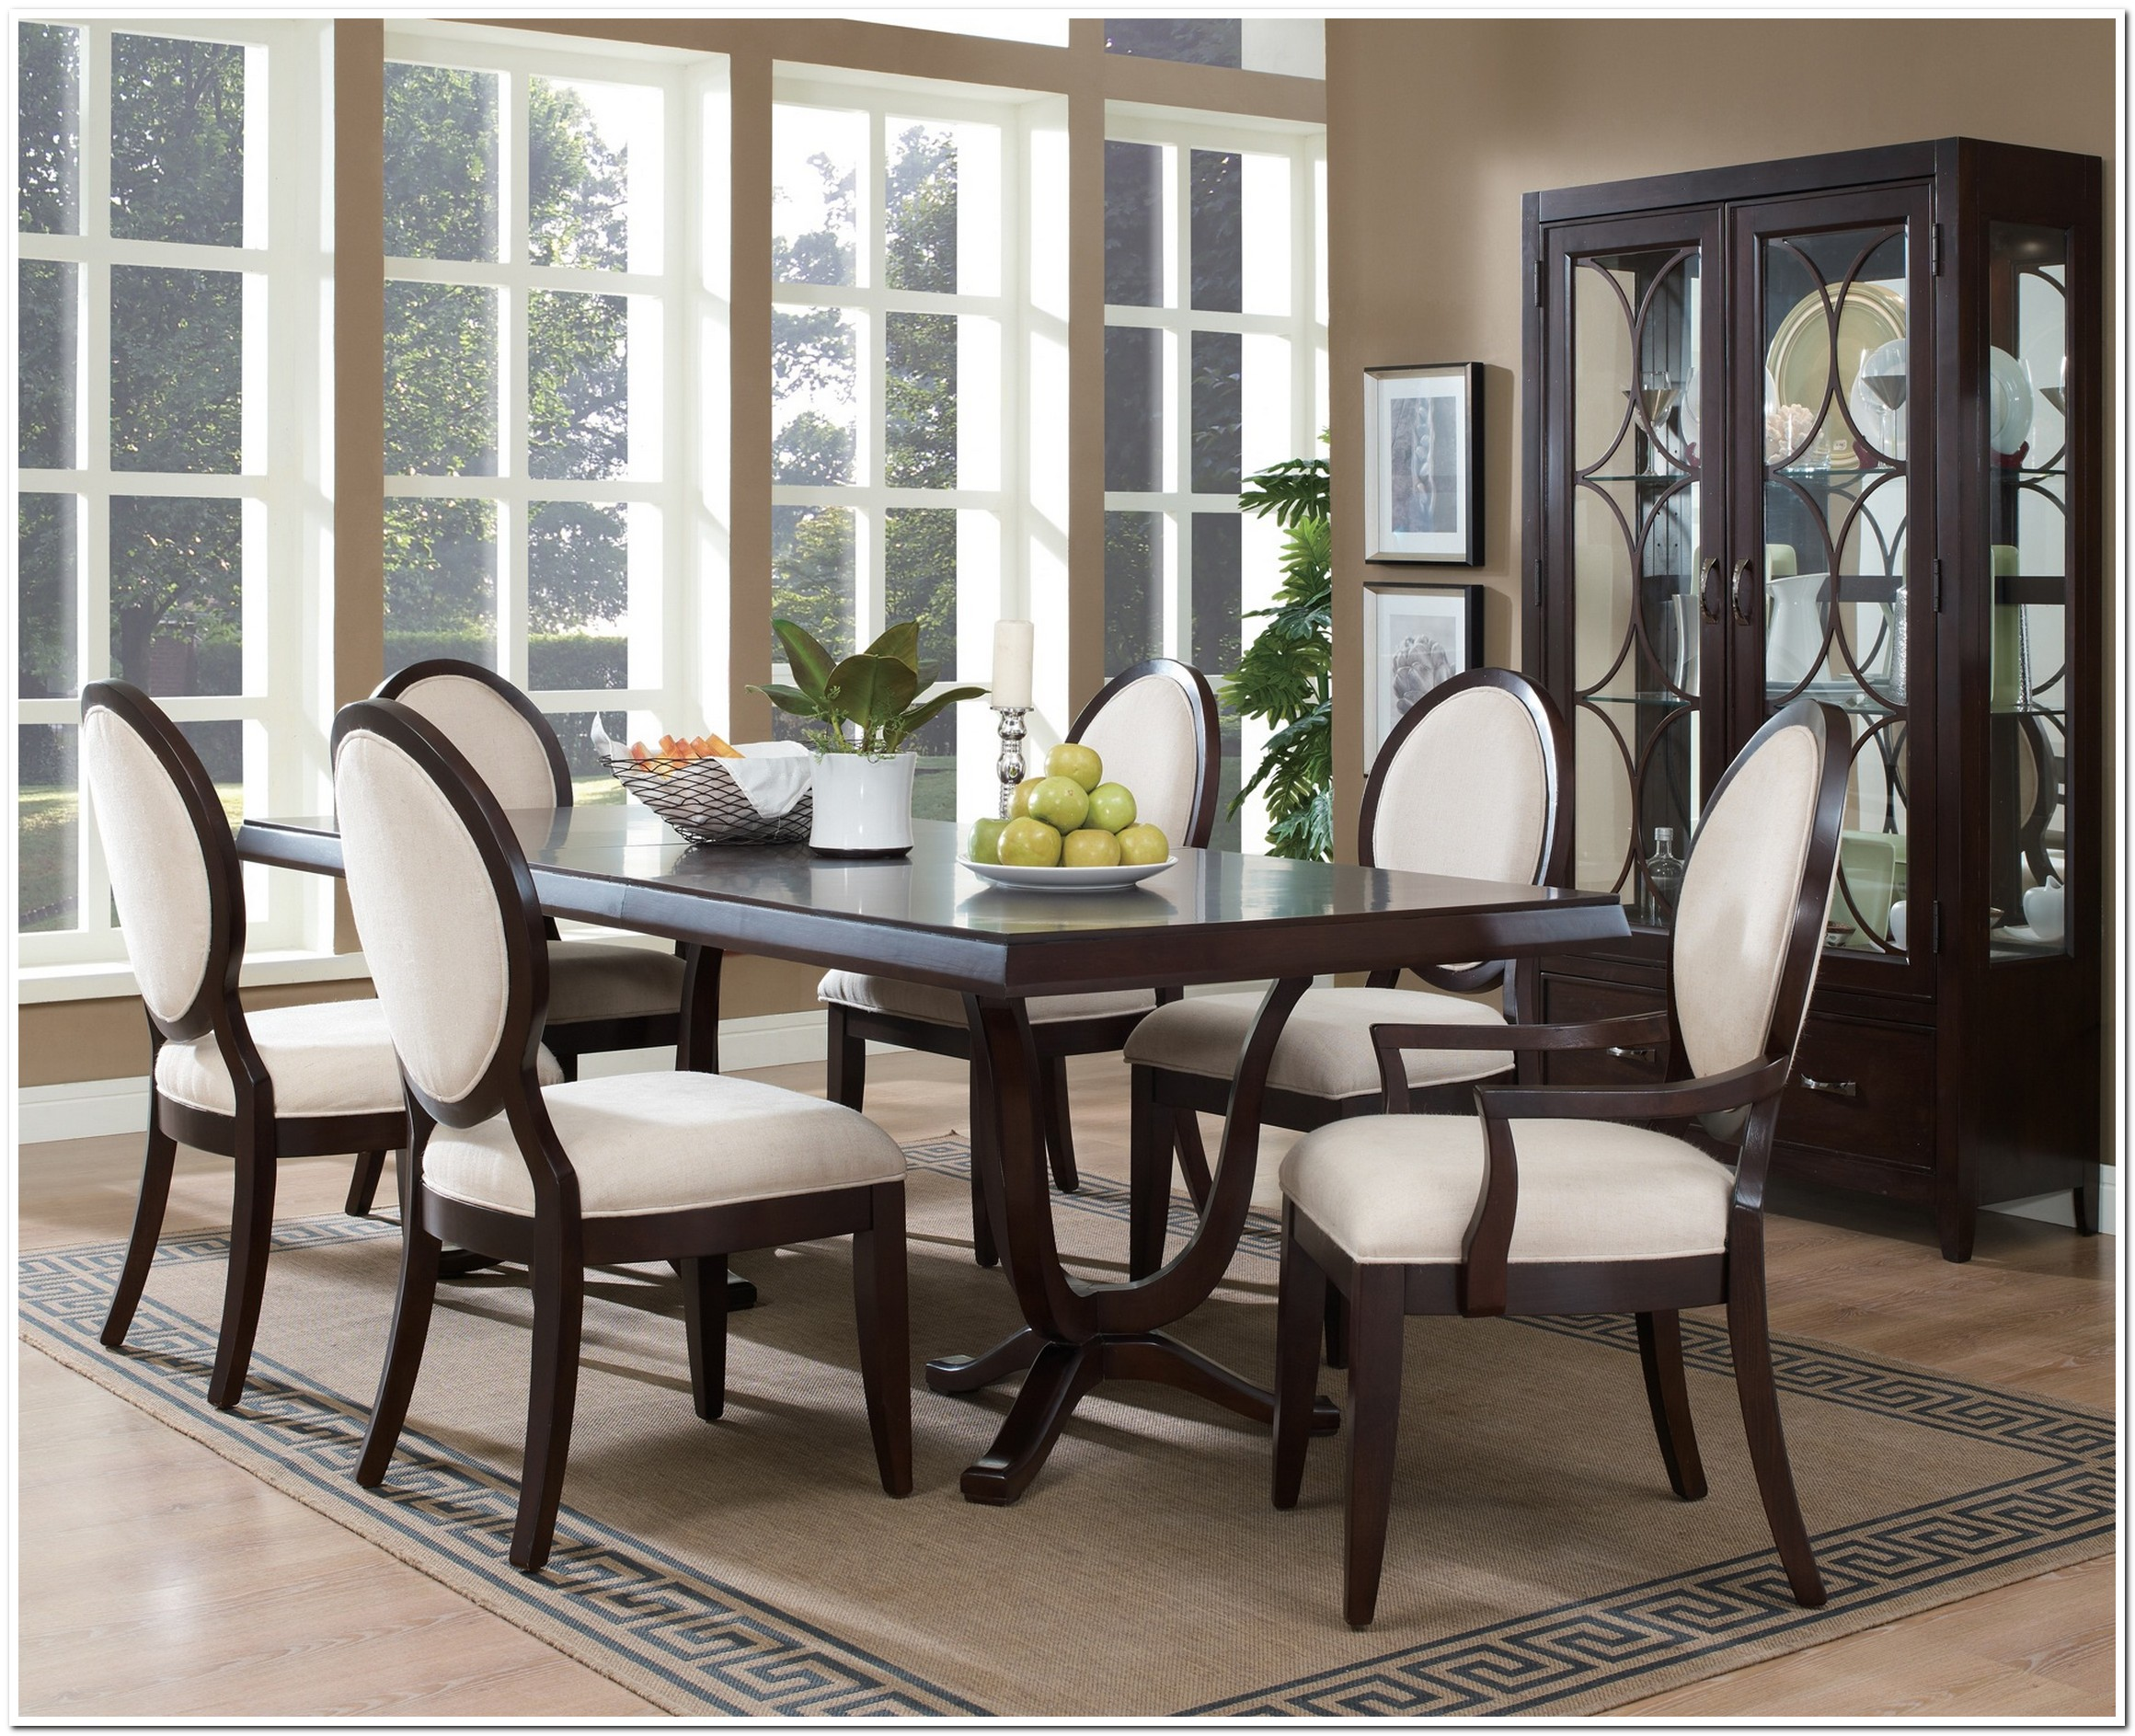 Know What Dining Room Furniture Sets You Want To Bring Out ...